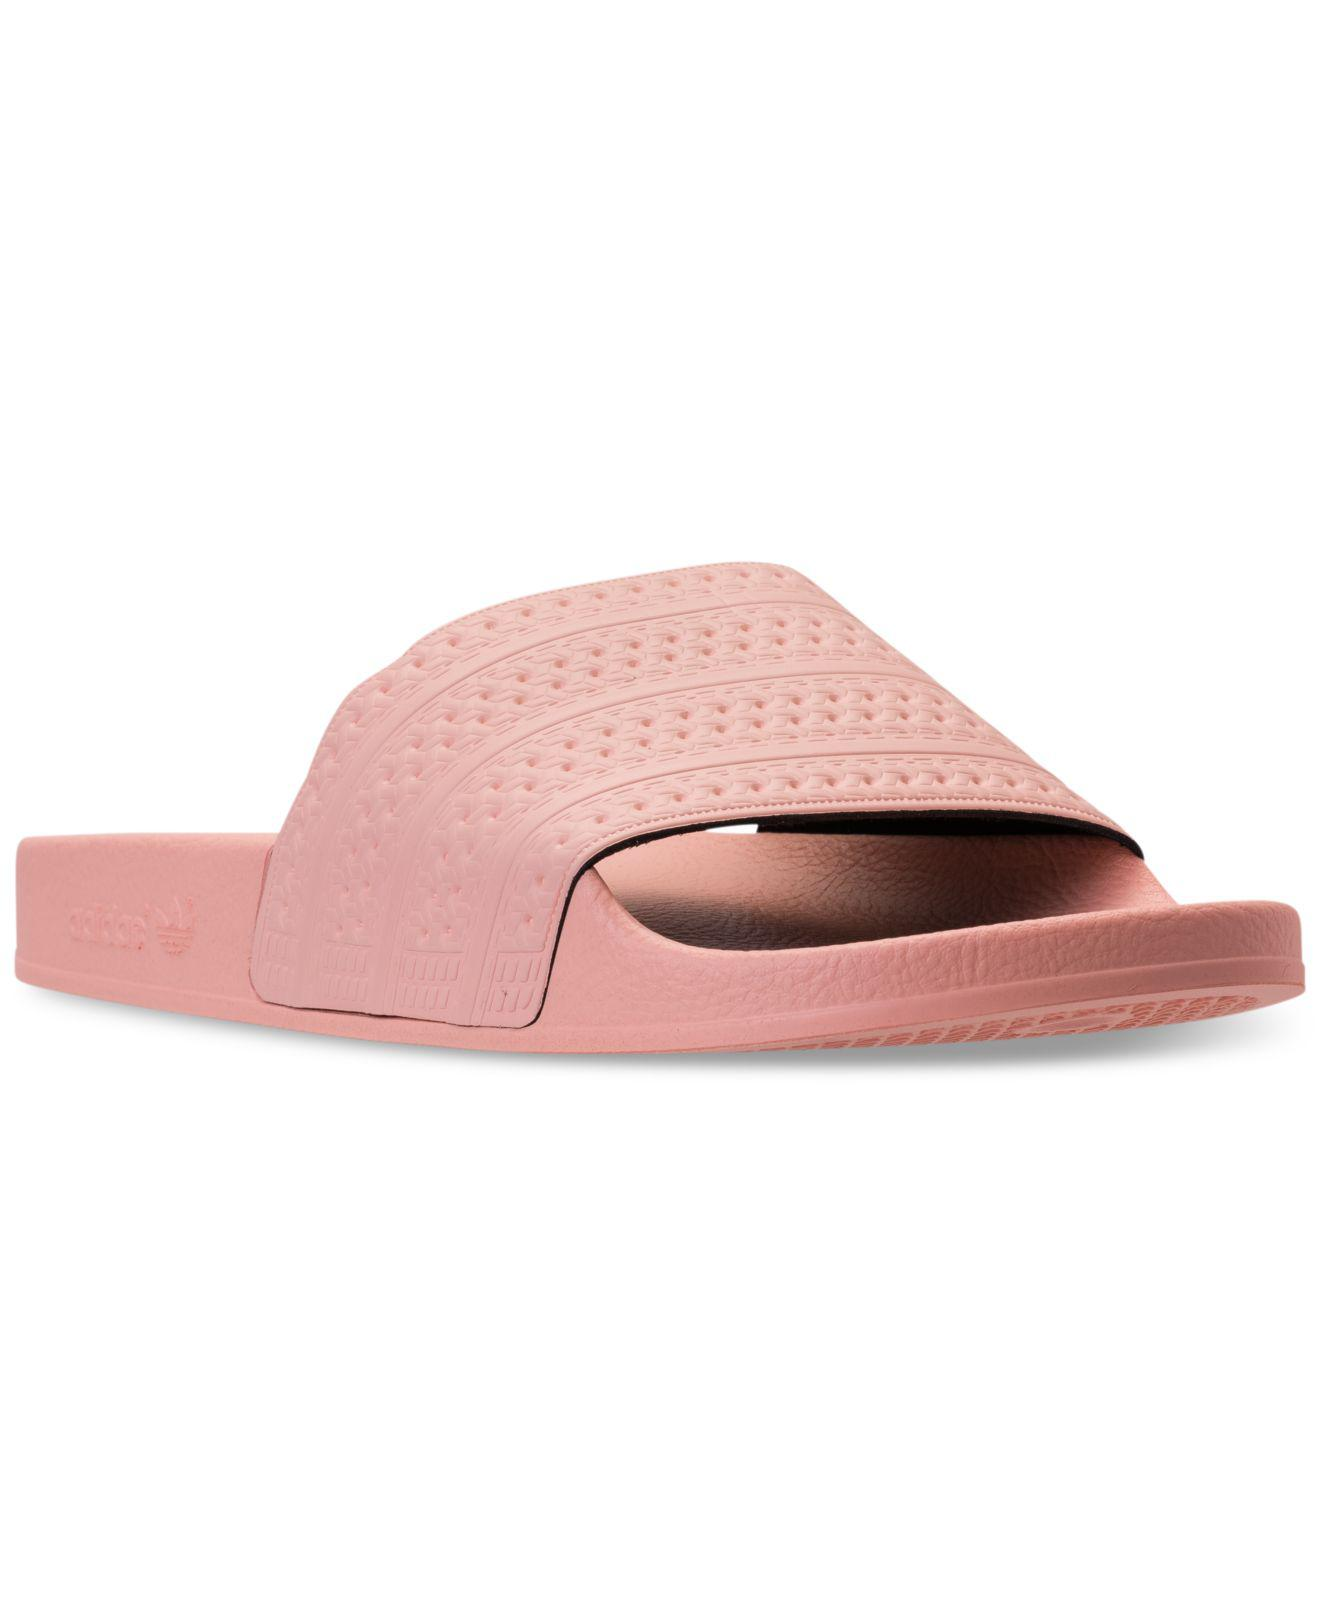 0f396d1f79e844 Lyst - Adidas Men s Adilette Slide Sandals From Finish Line in Pink ...